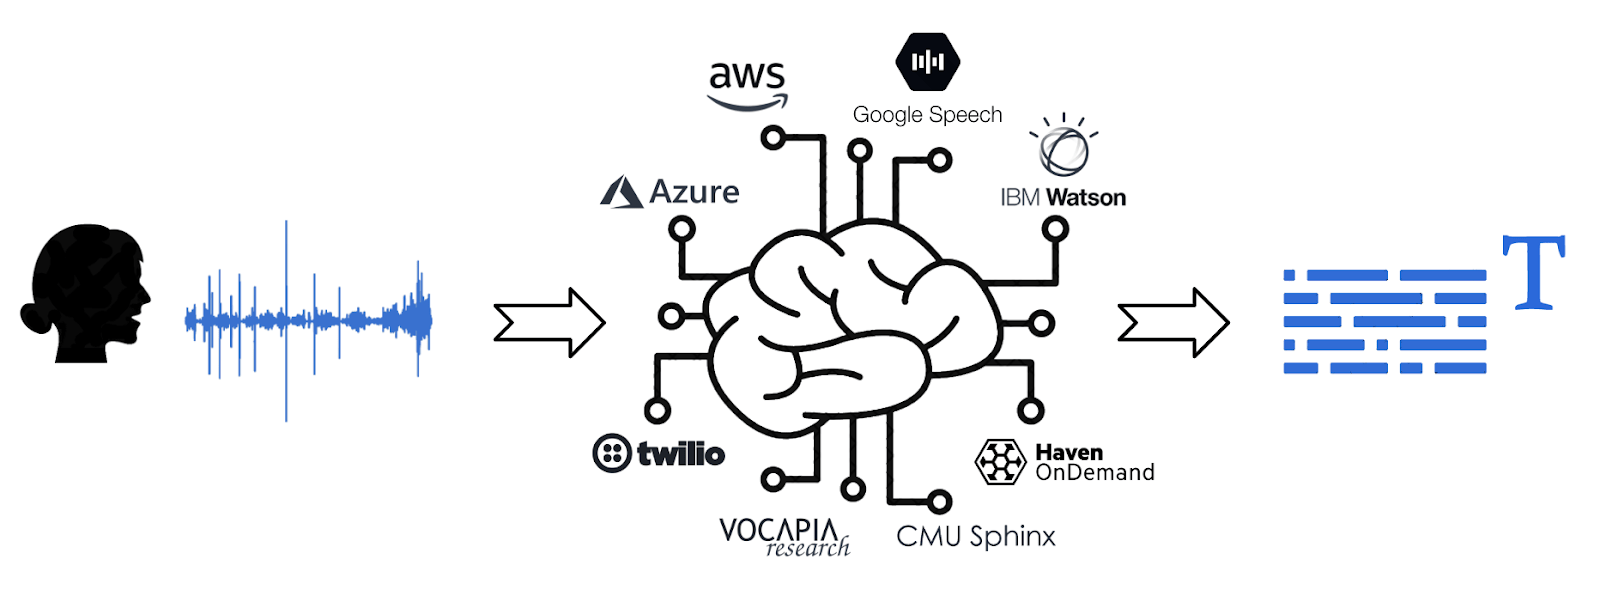 AI-Compare compares artificial intelligence APIs—Speech-To-Text